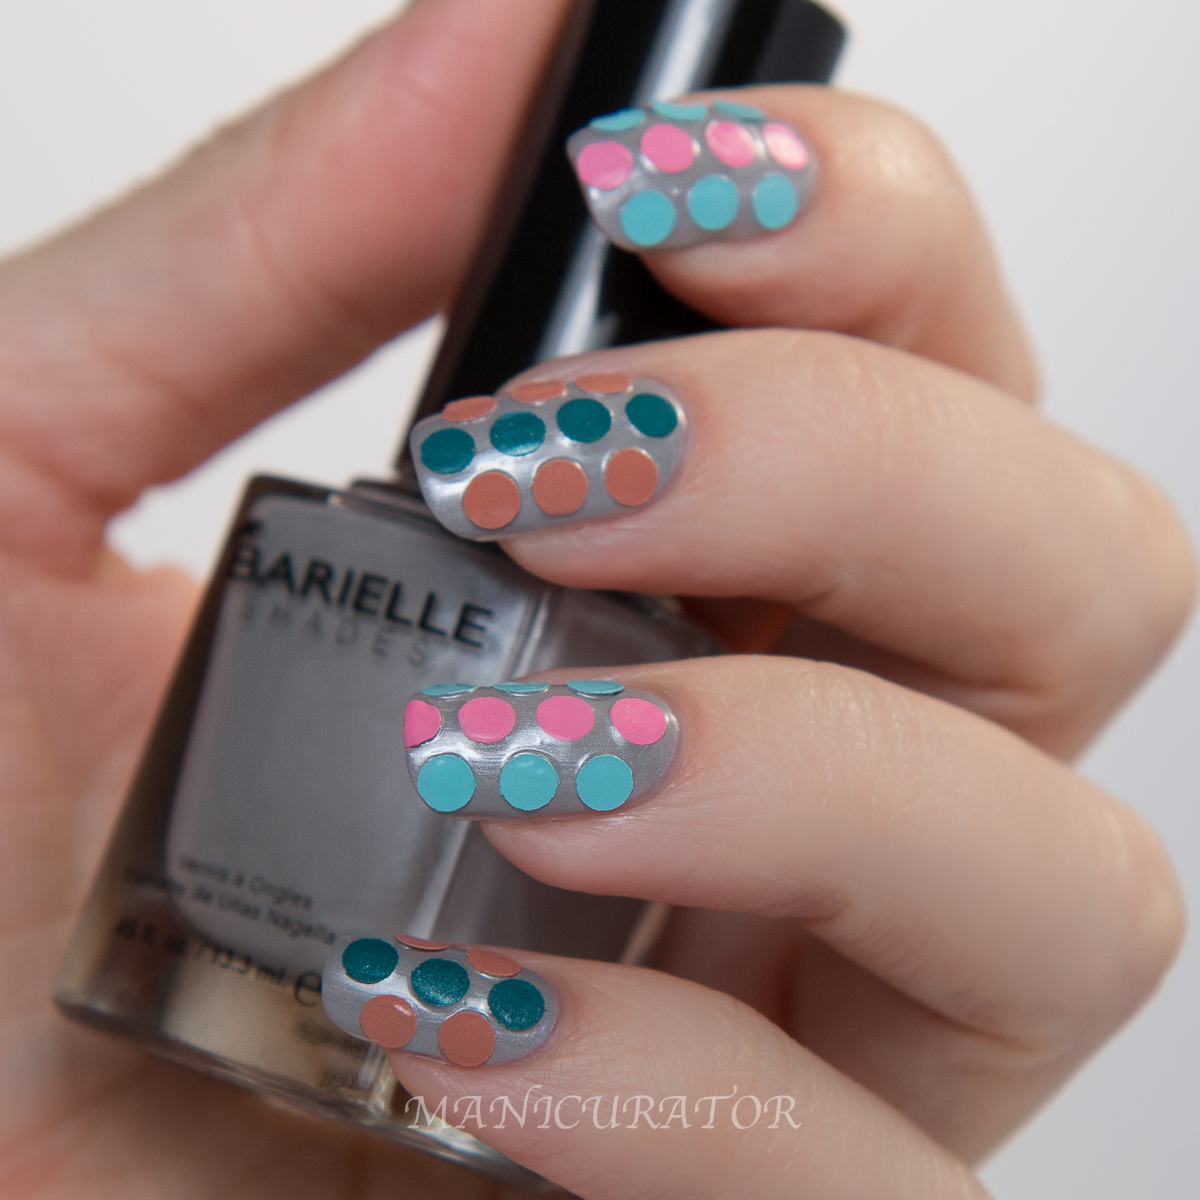 Barielle Gentle Breeze Spring Grey Sky dot nail art